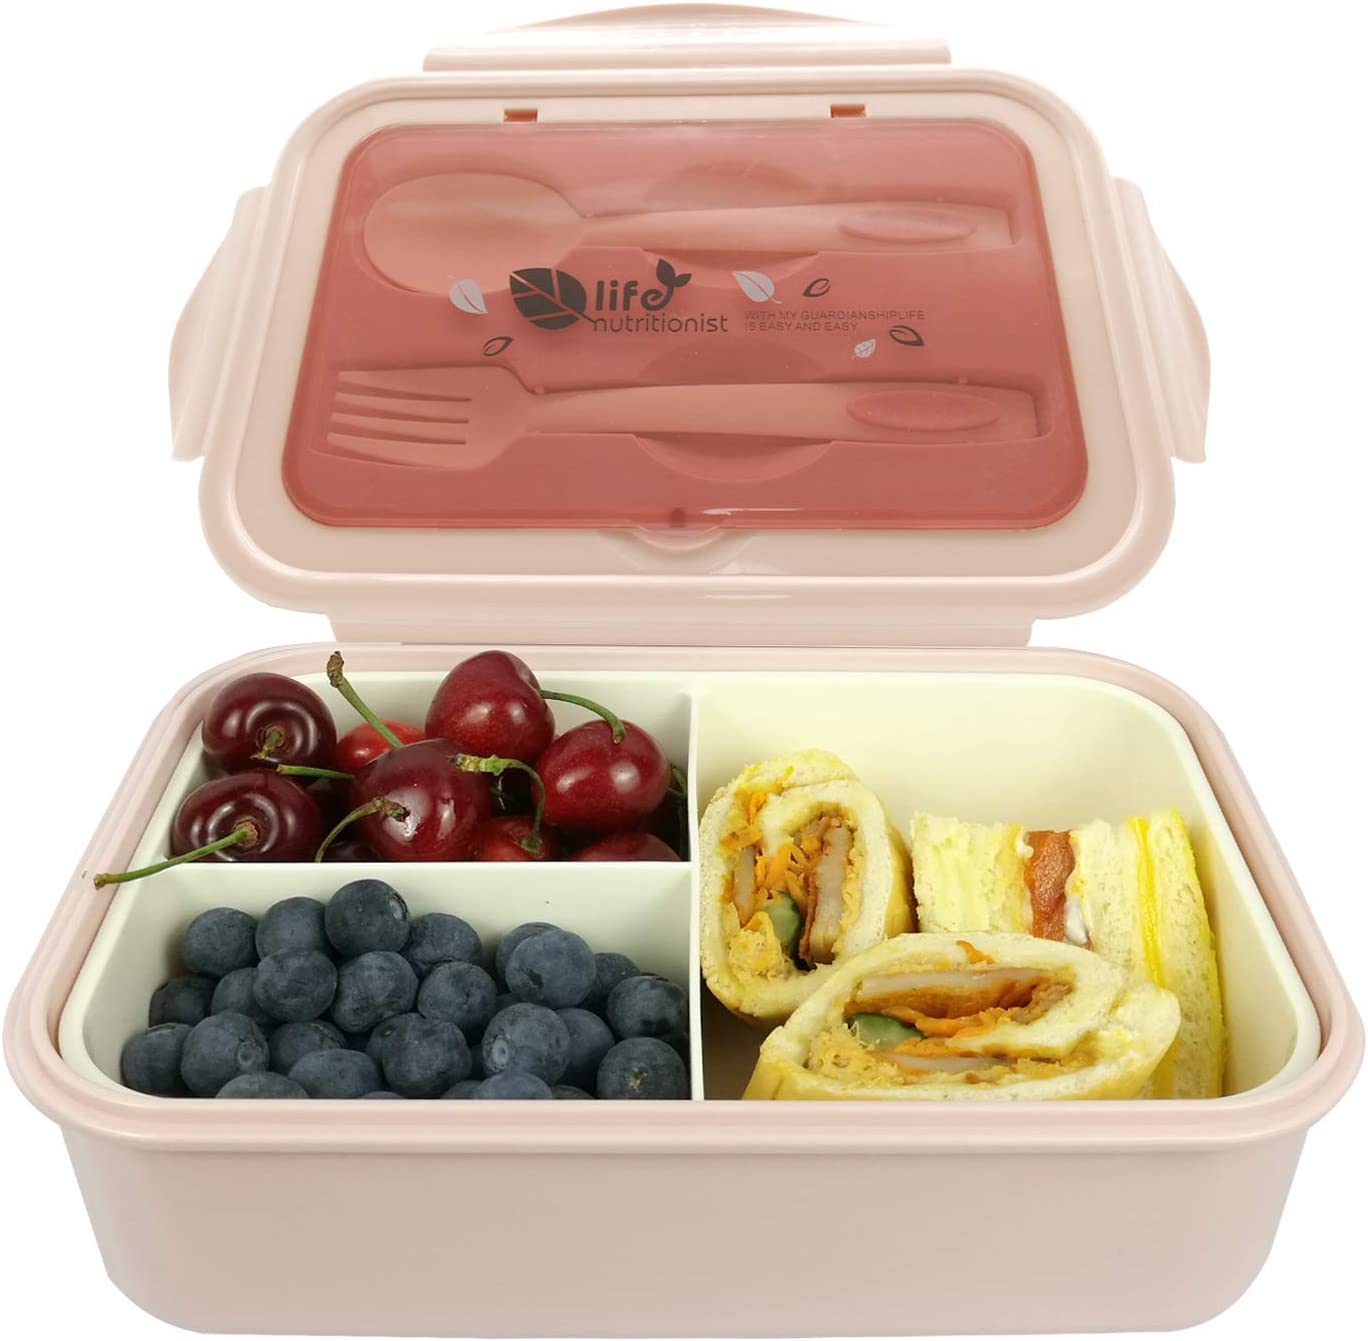 UPTRUST Luxury goods Bento Lunch Quantity limited container For Kids adult 3 With box C